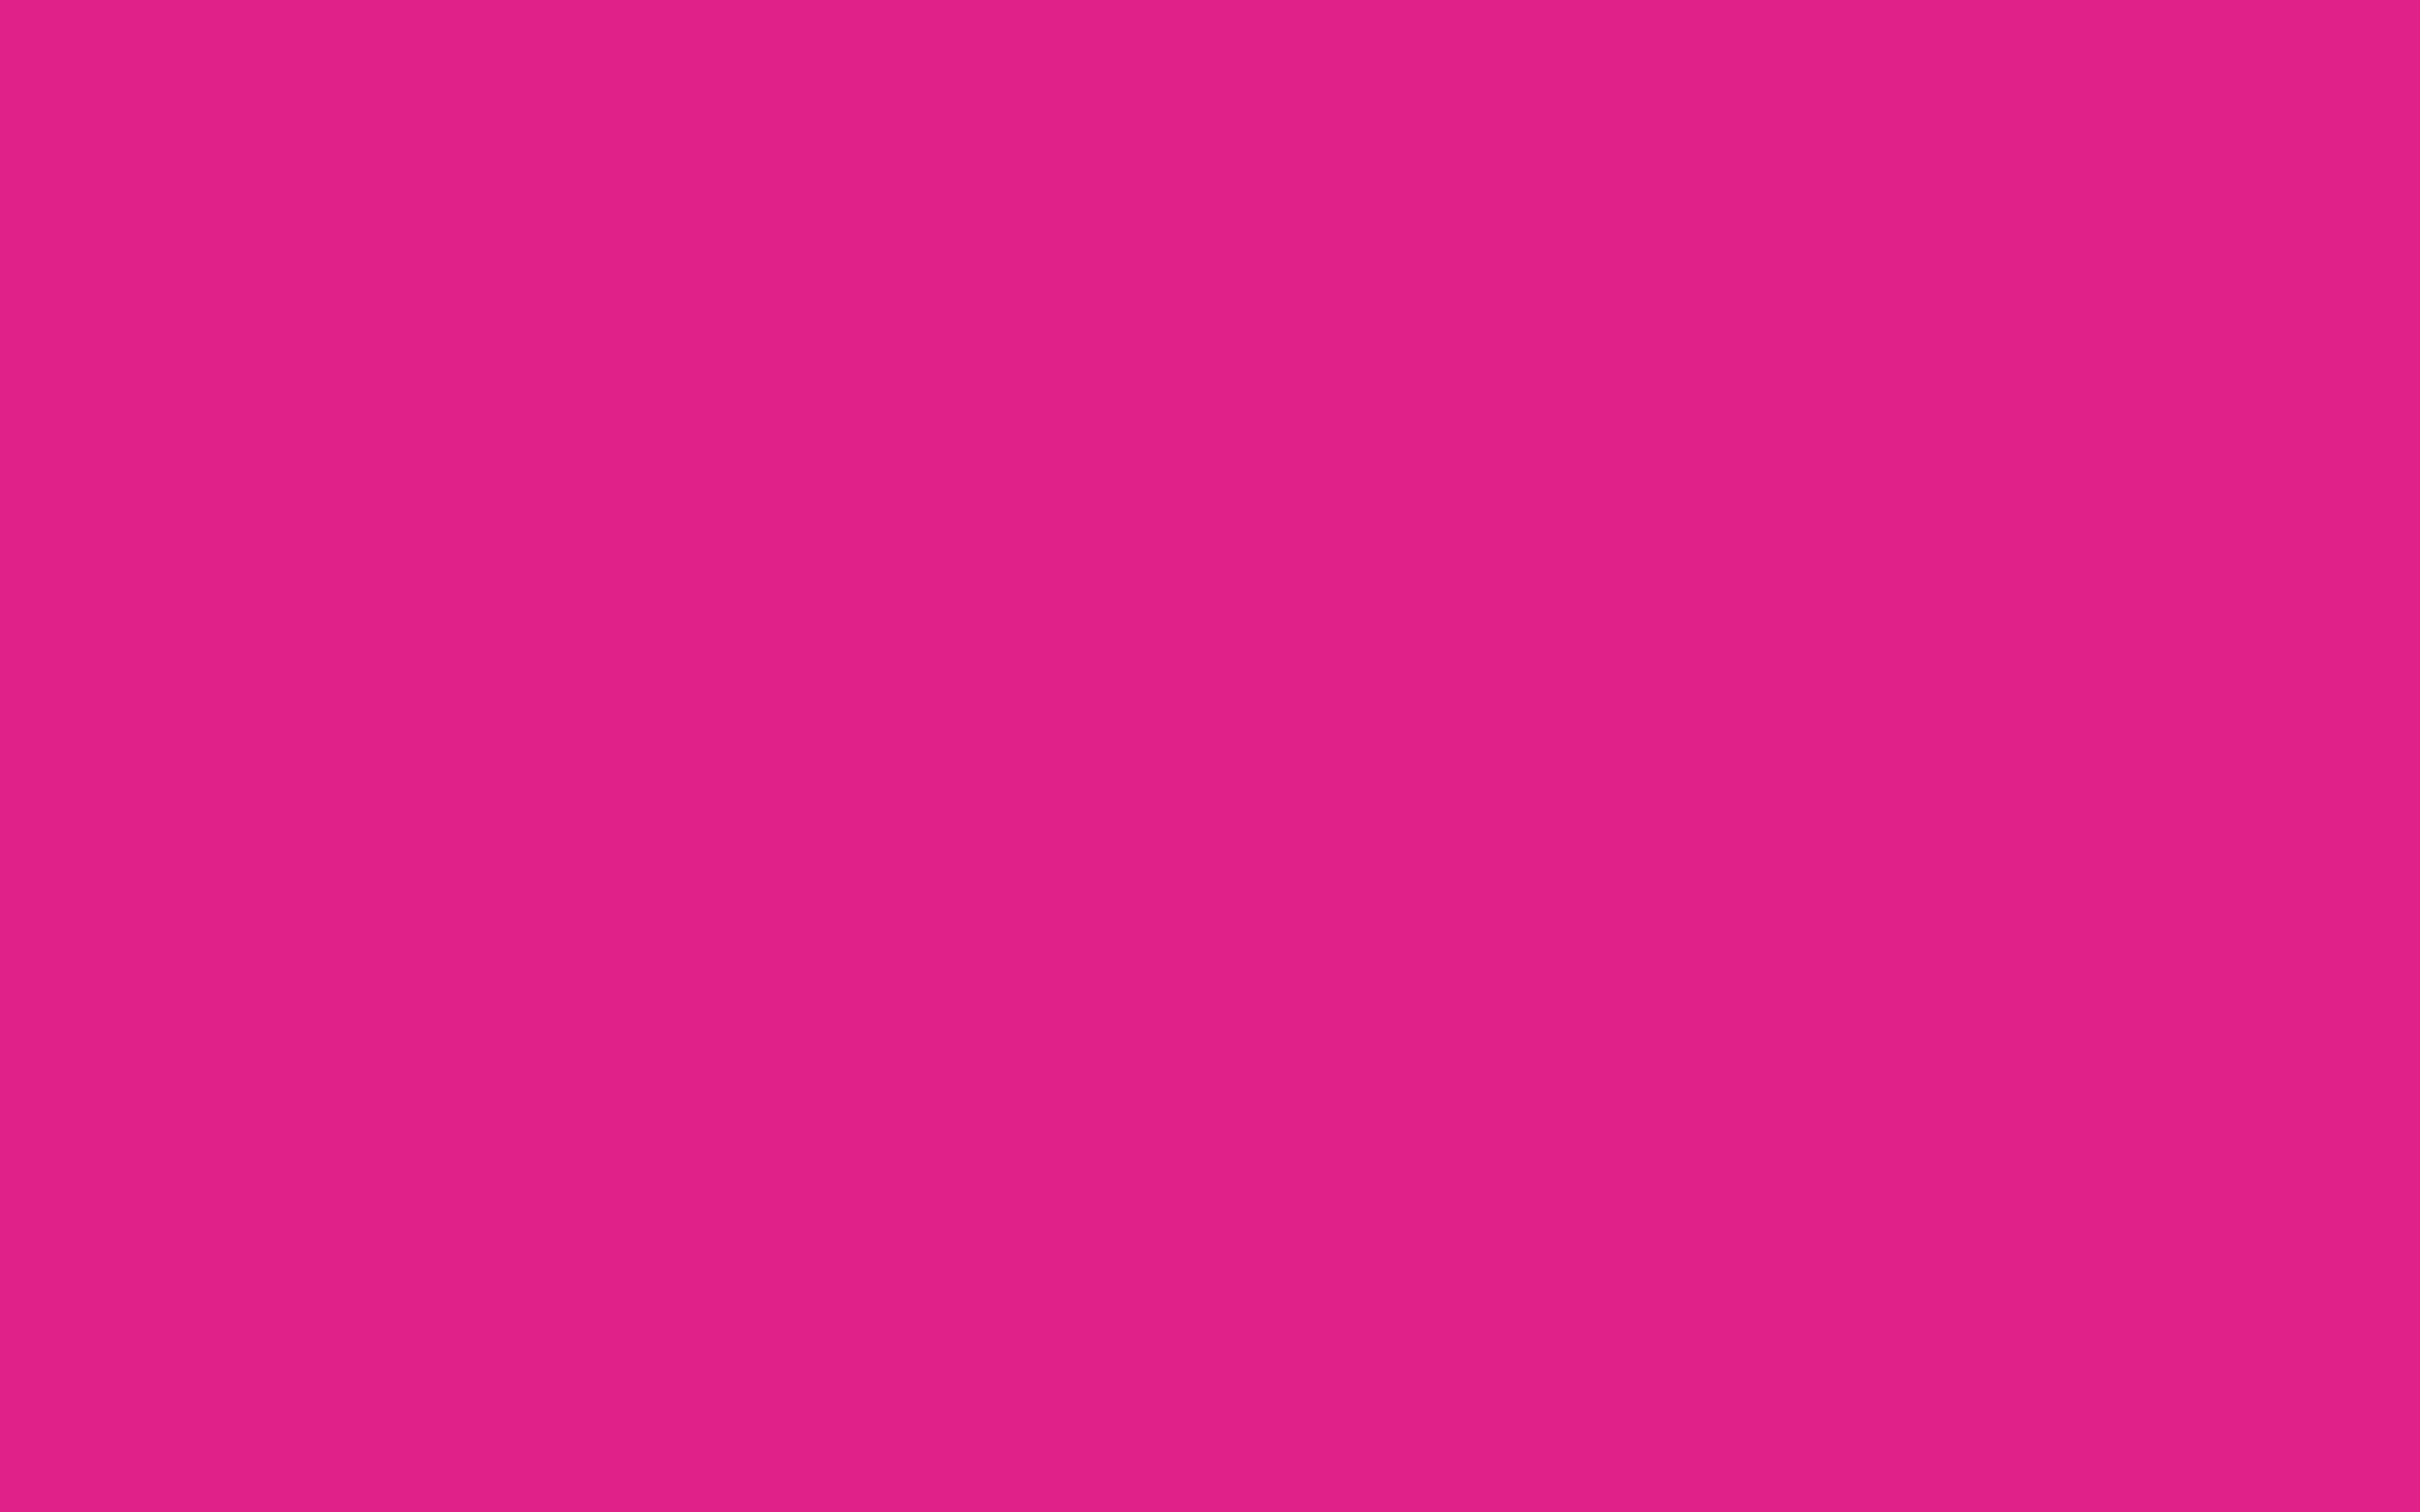 2880x1800 Barbie Pink Solid Color Background